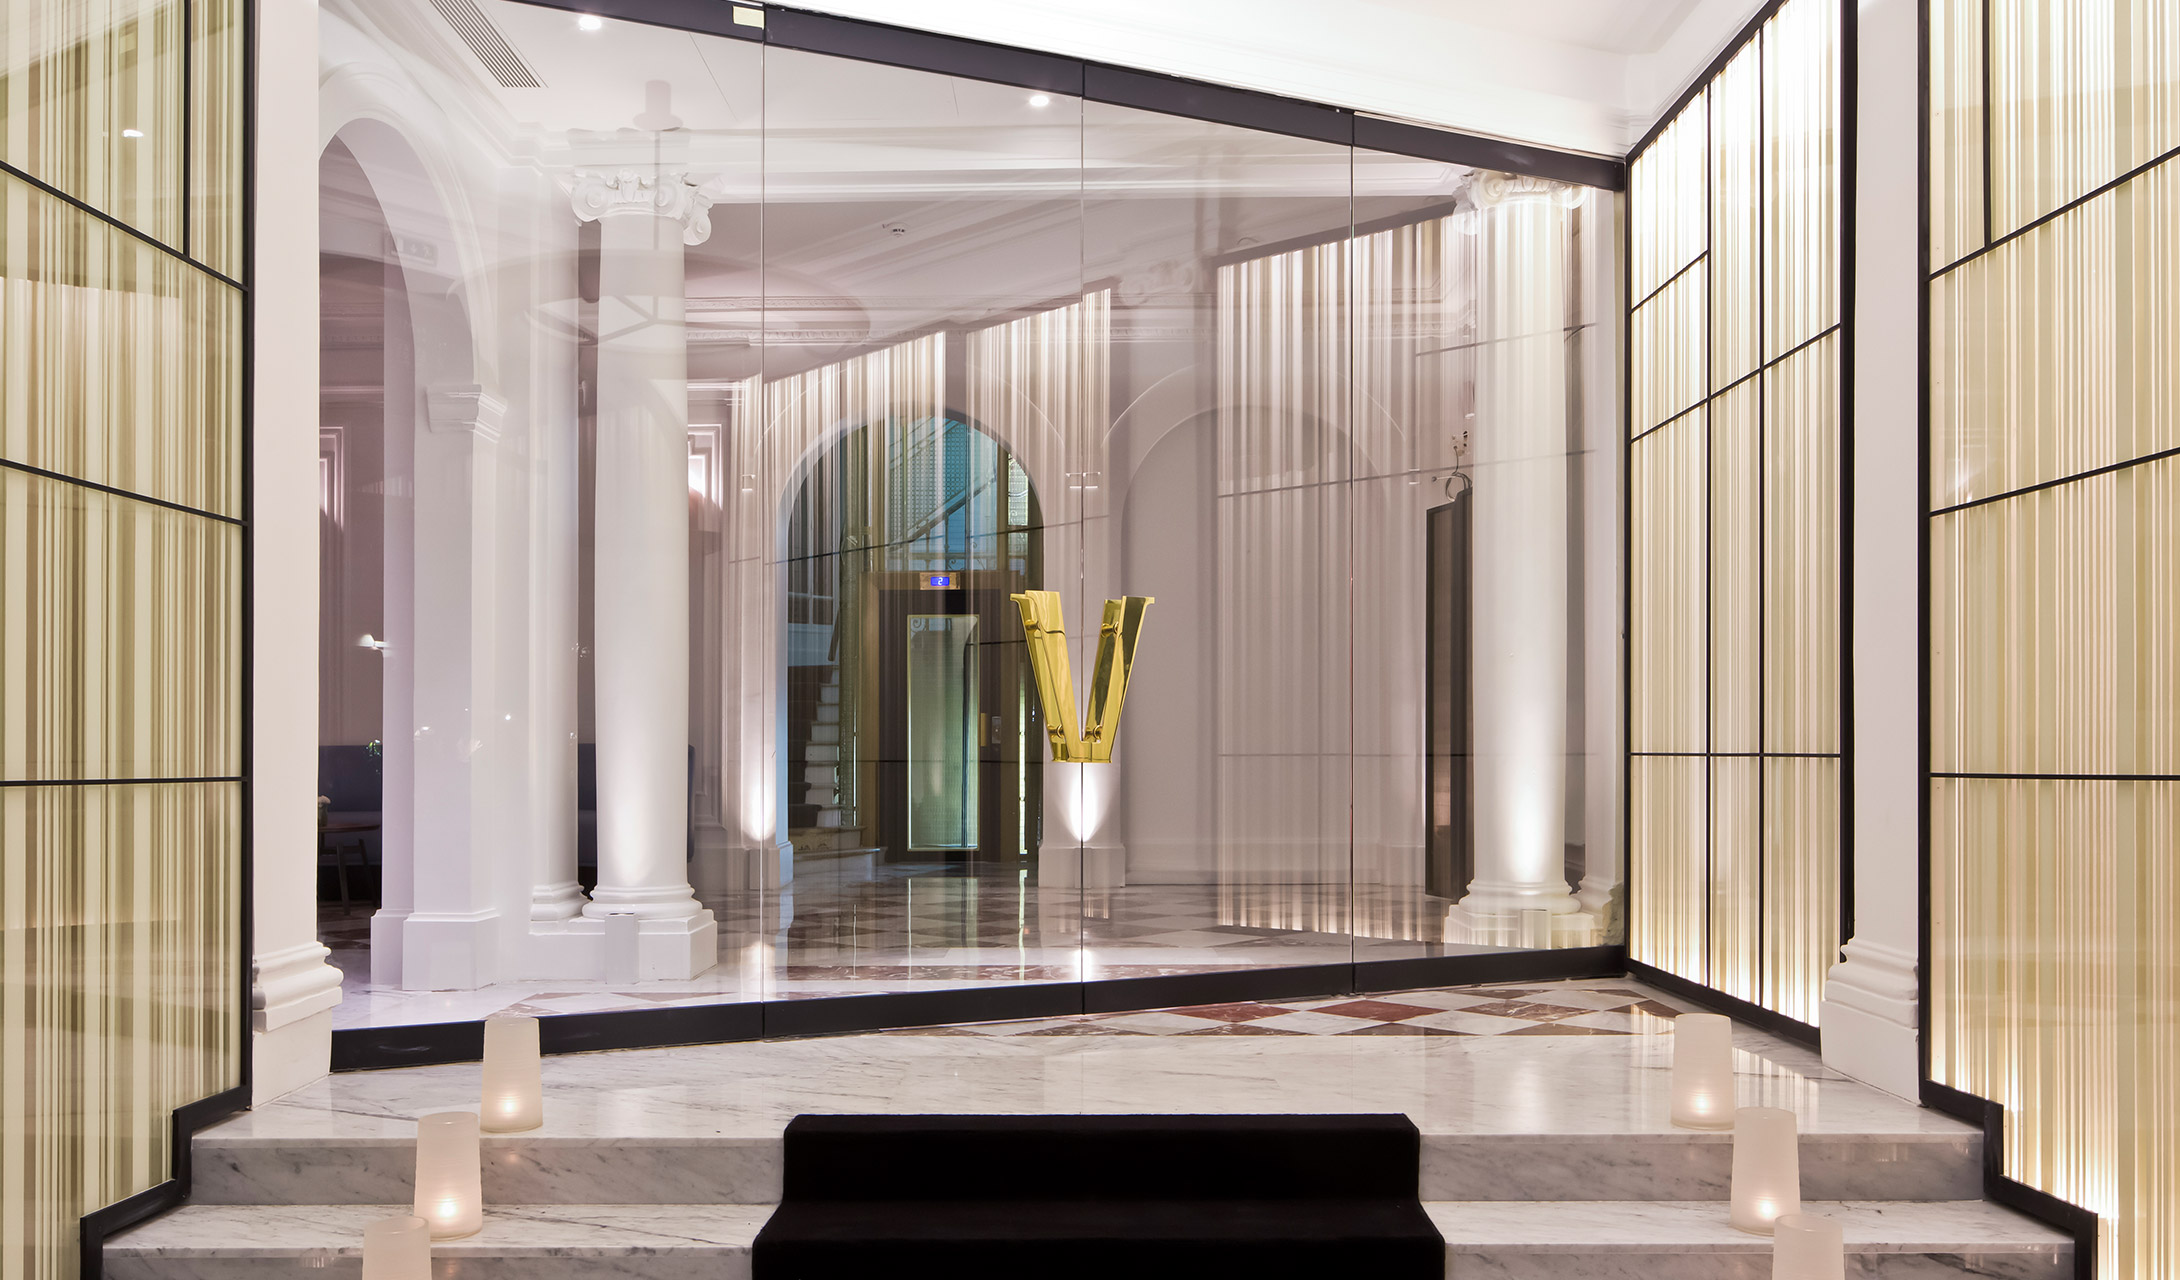 Hotel vernet champs elys es paris france design hotels for Designhotel paris